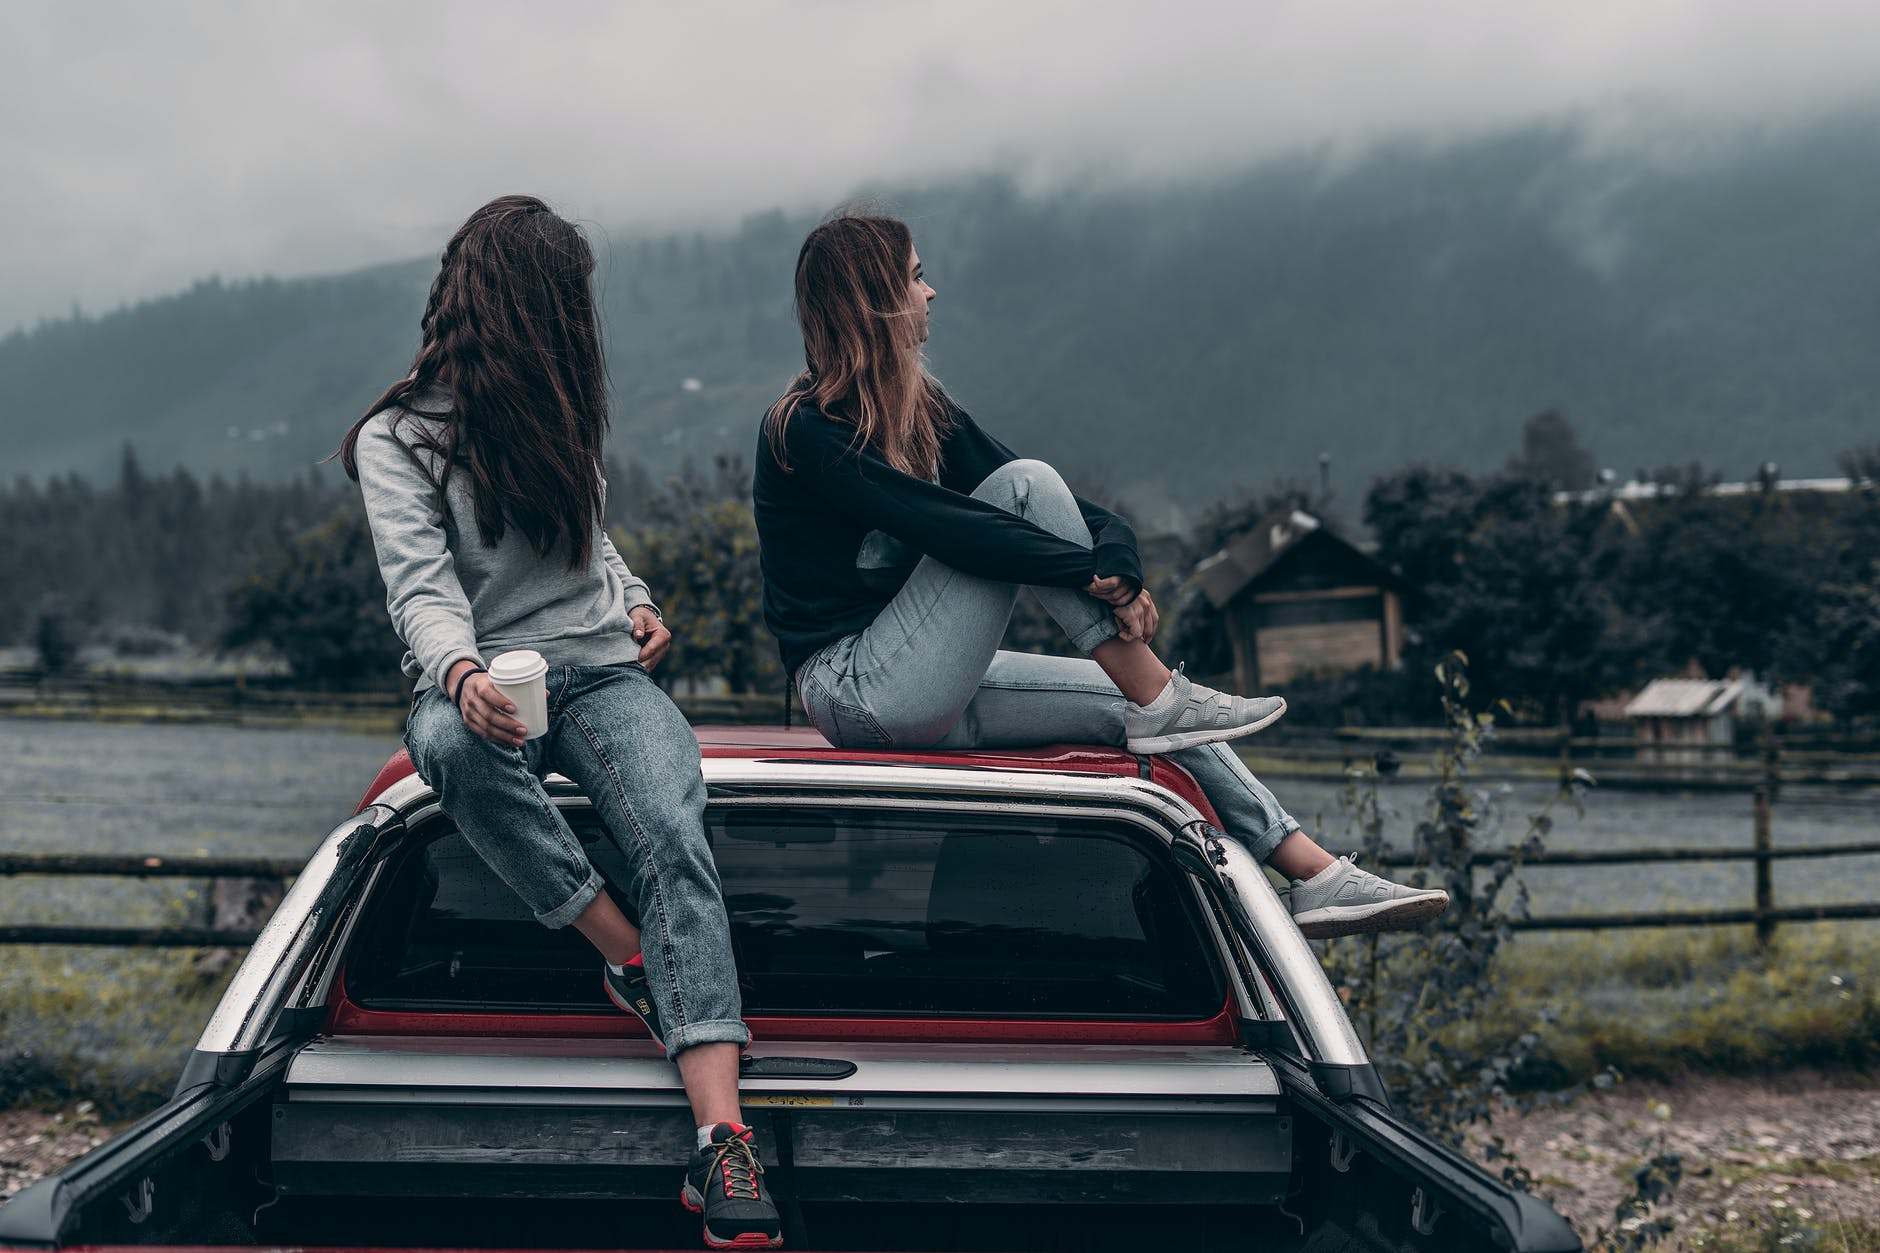 two women sitting on vehicle roofs